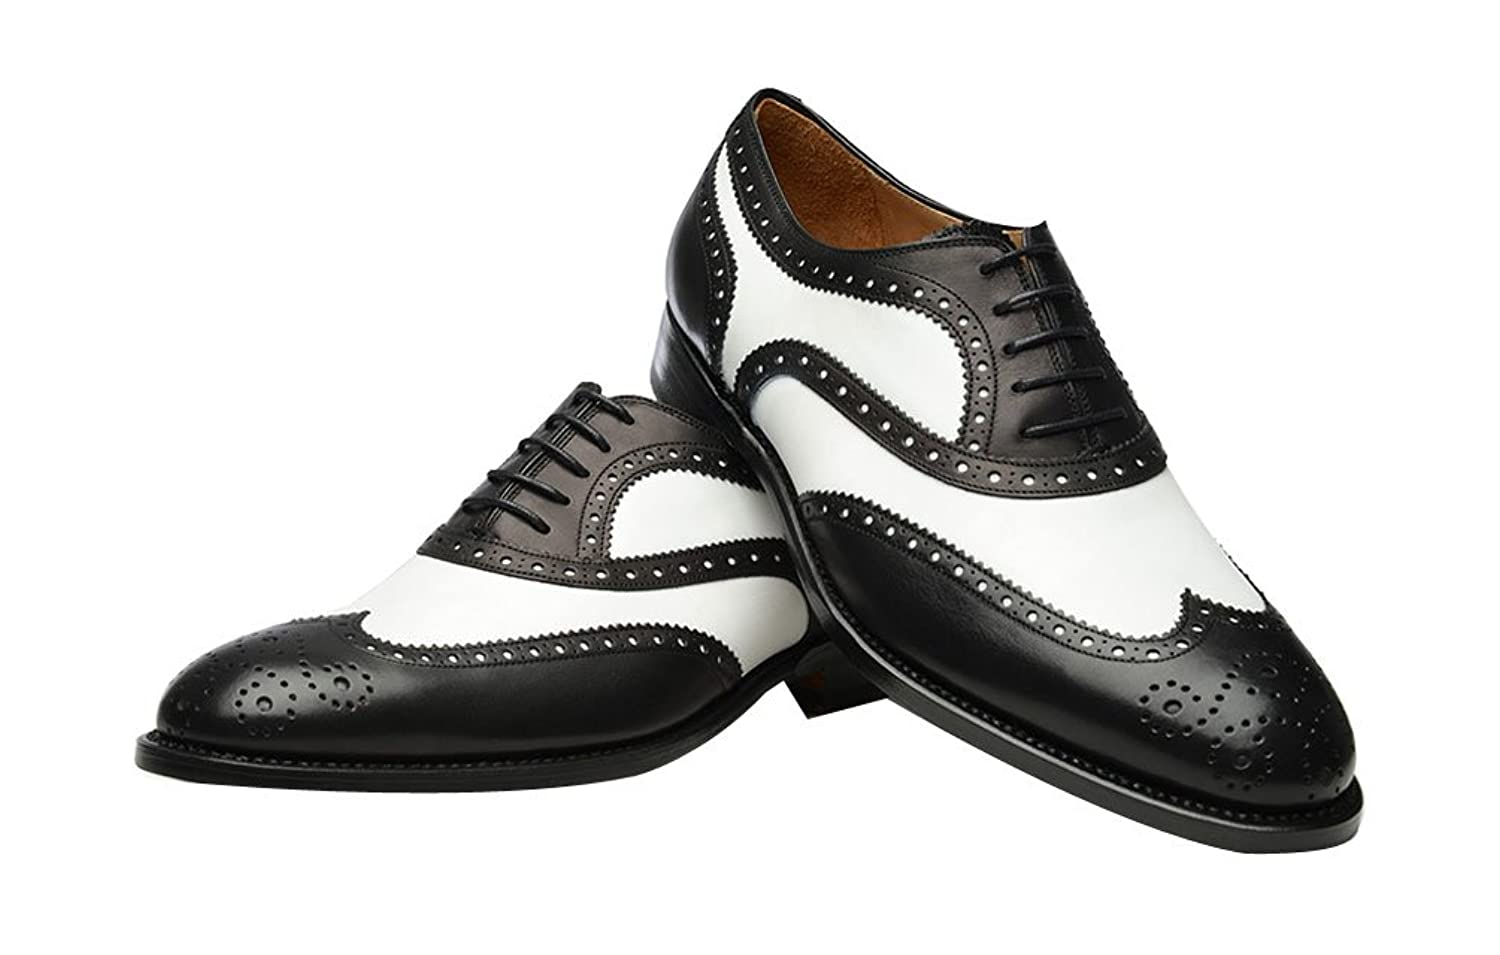 1920s Fashion for Men ROYAL WIND Geninue Leather Spectator Shoes Mens Black White Lace up Wing Tip Perforated Dress Shoes $79.99 AT vintagedancer.com